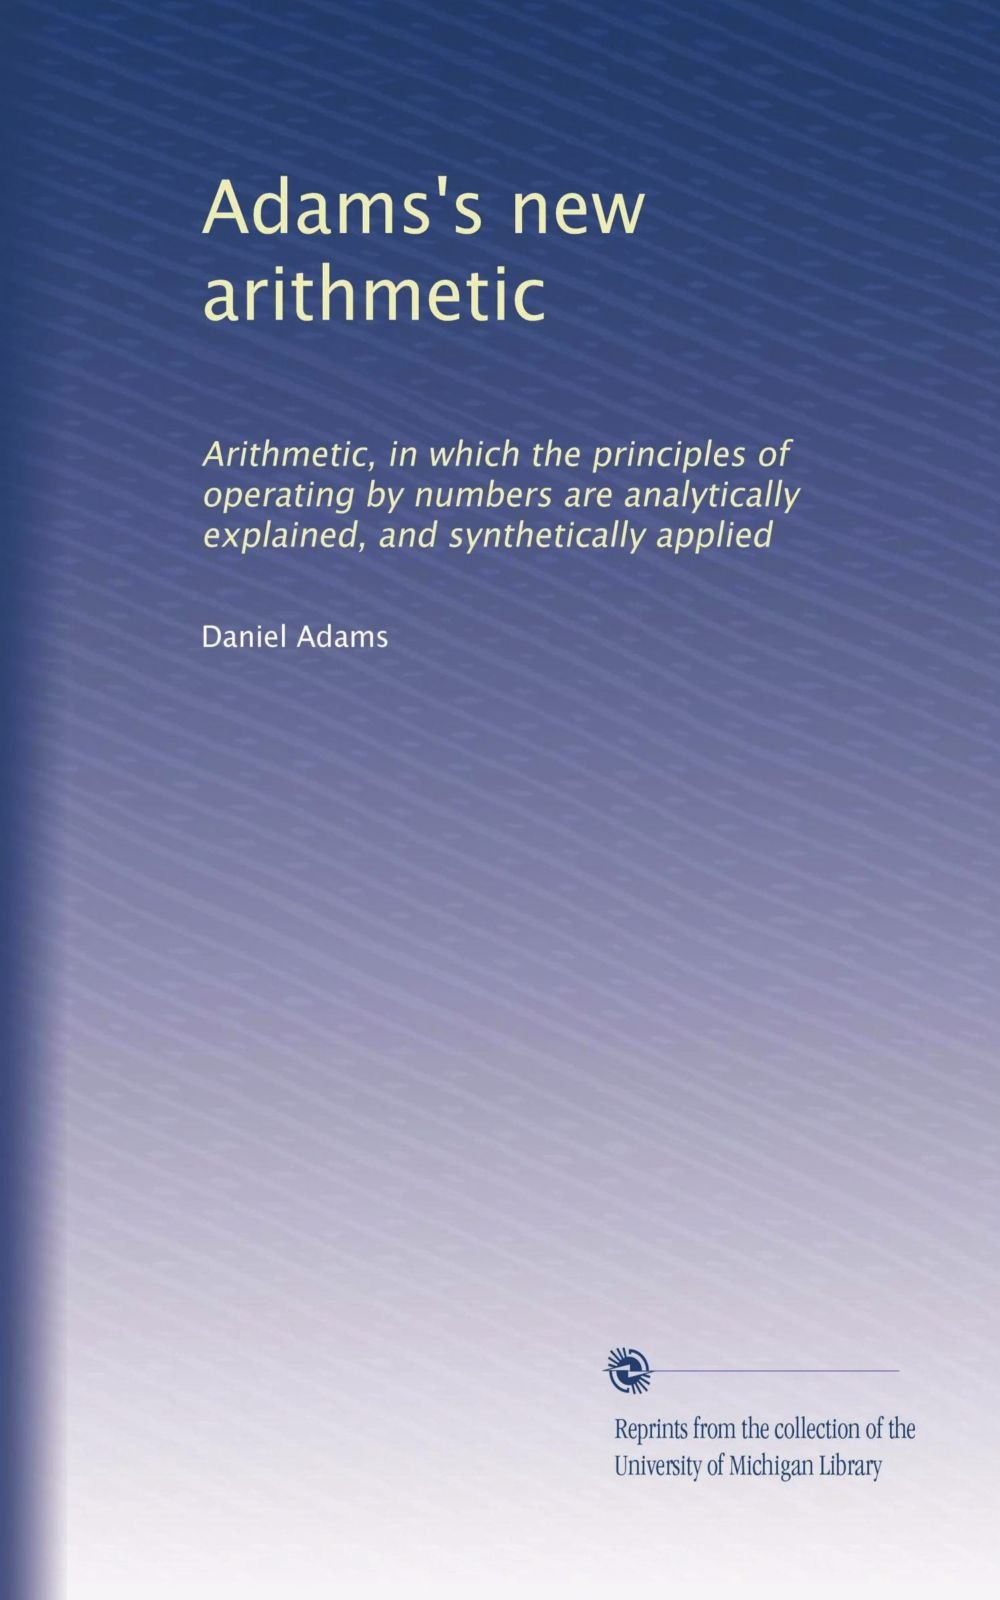 Download Adams's new arithmetic: Arithmetic, in which the principles of operating by numbers are analytically explained, and synthetically applied pdf